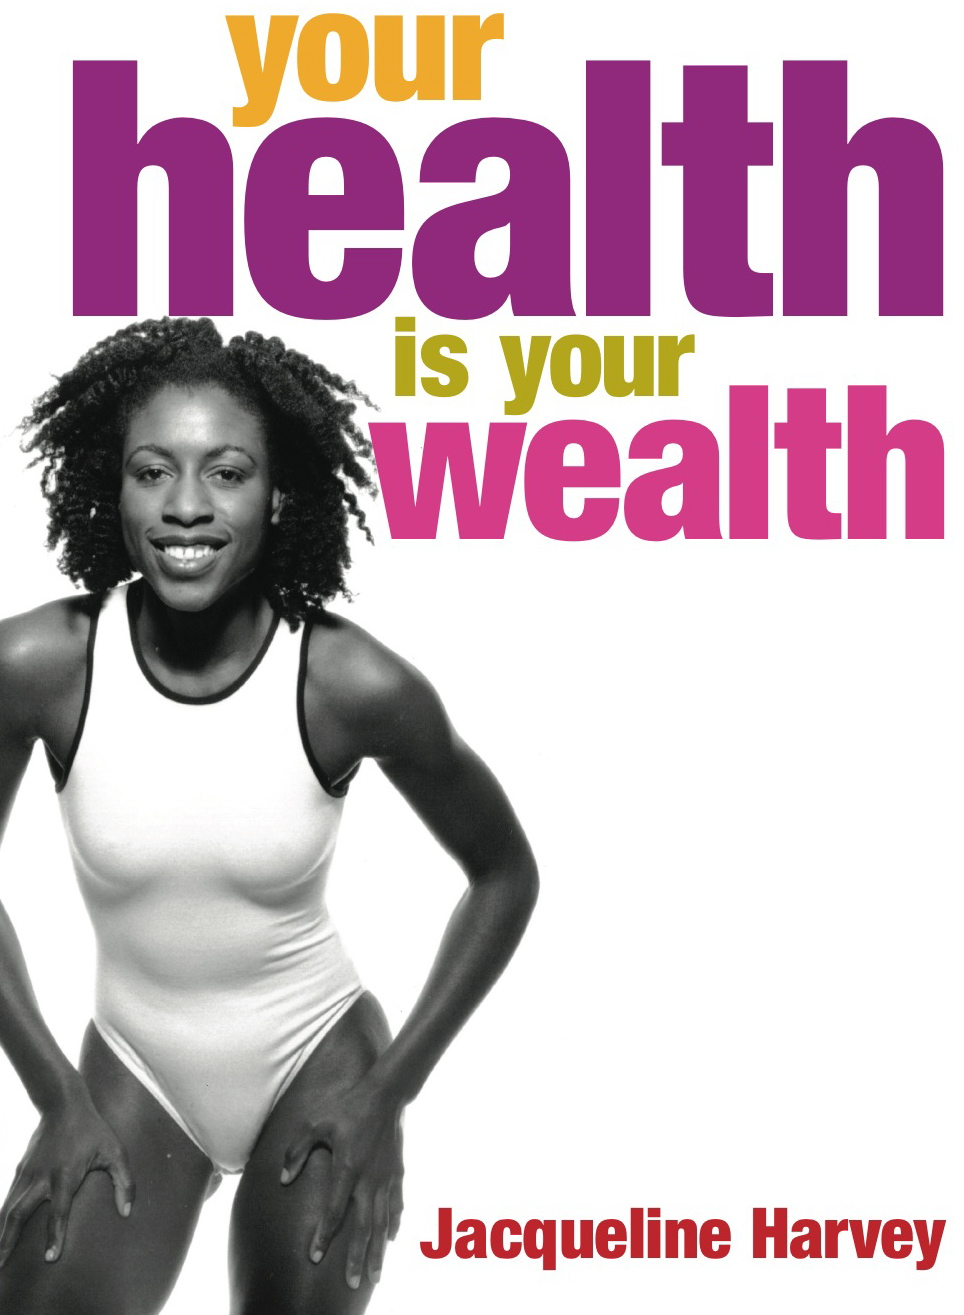 your health is your wealth - cropped.jpeg